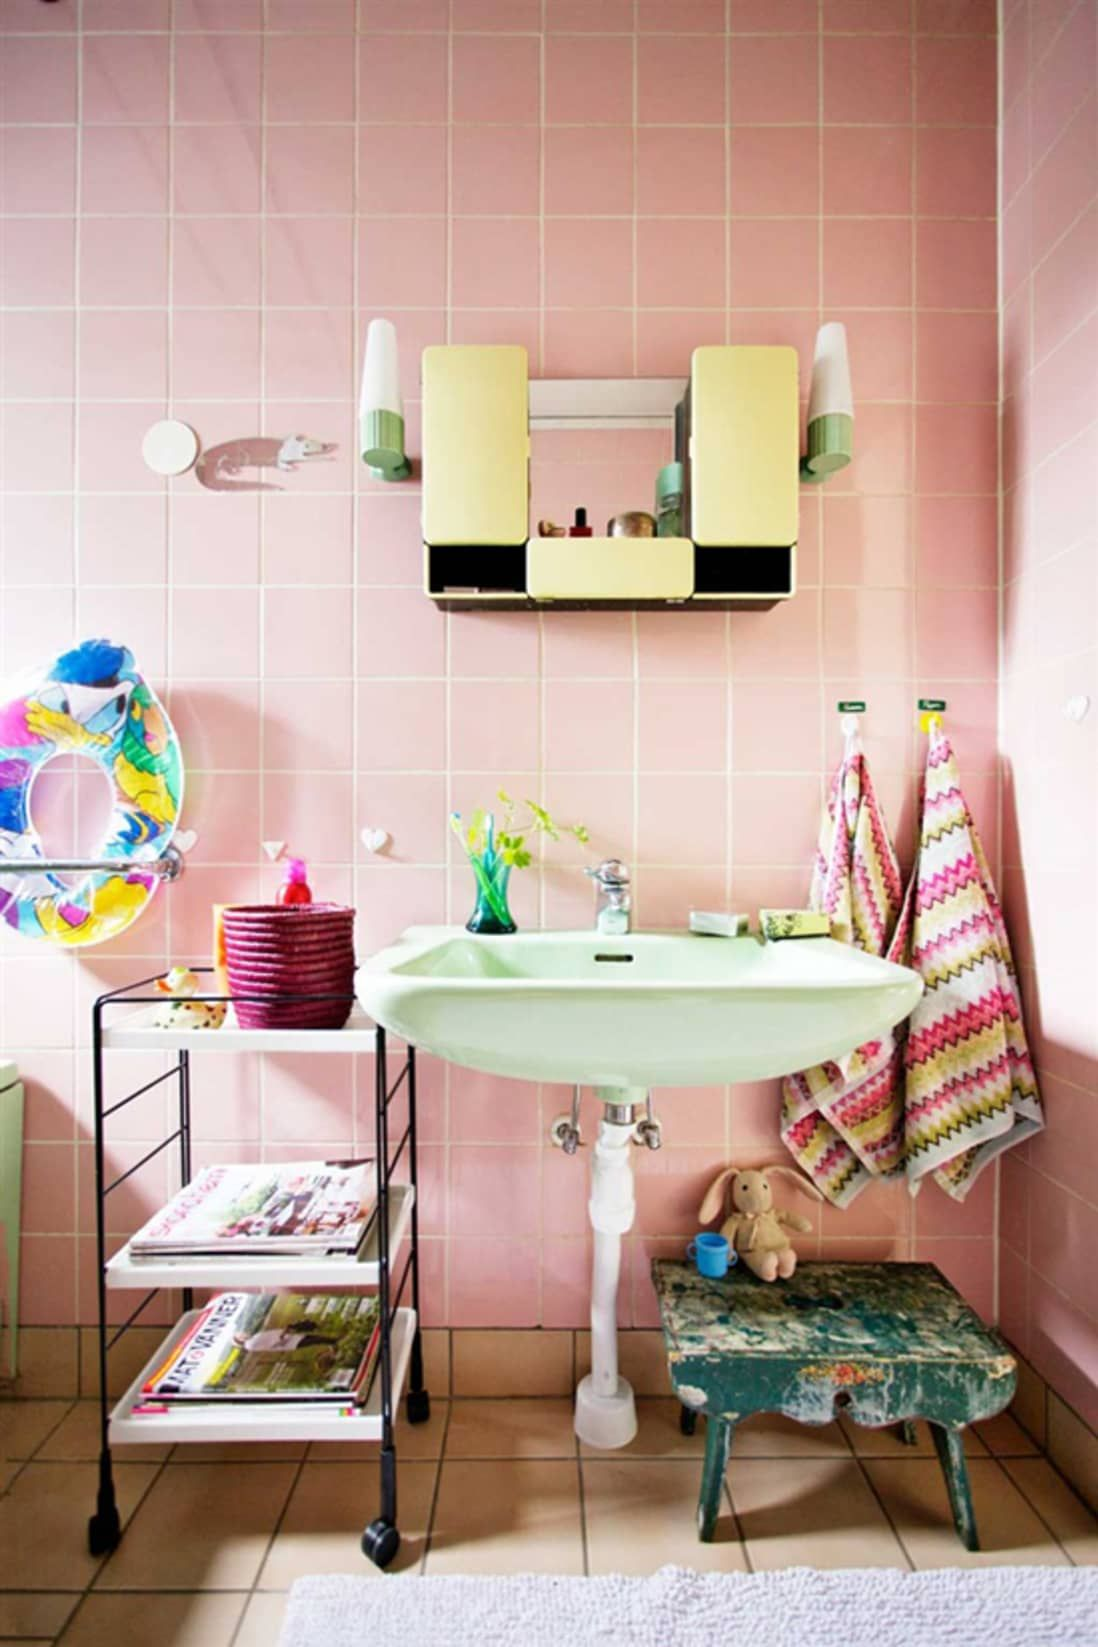 Photo of Vintage Goodness: 7 bathrooms where colorful fixtures look really good